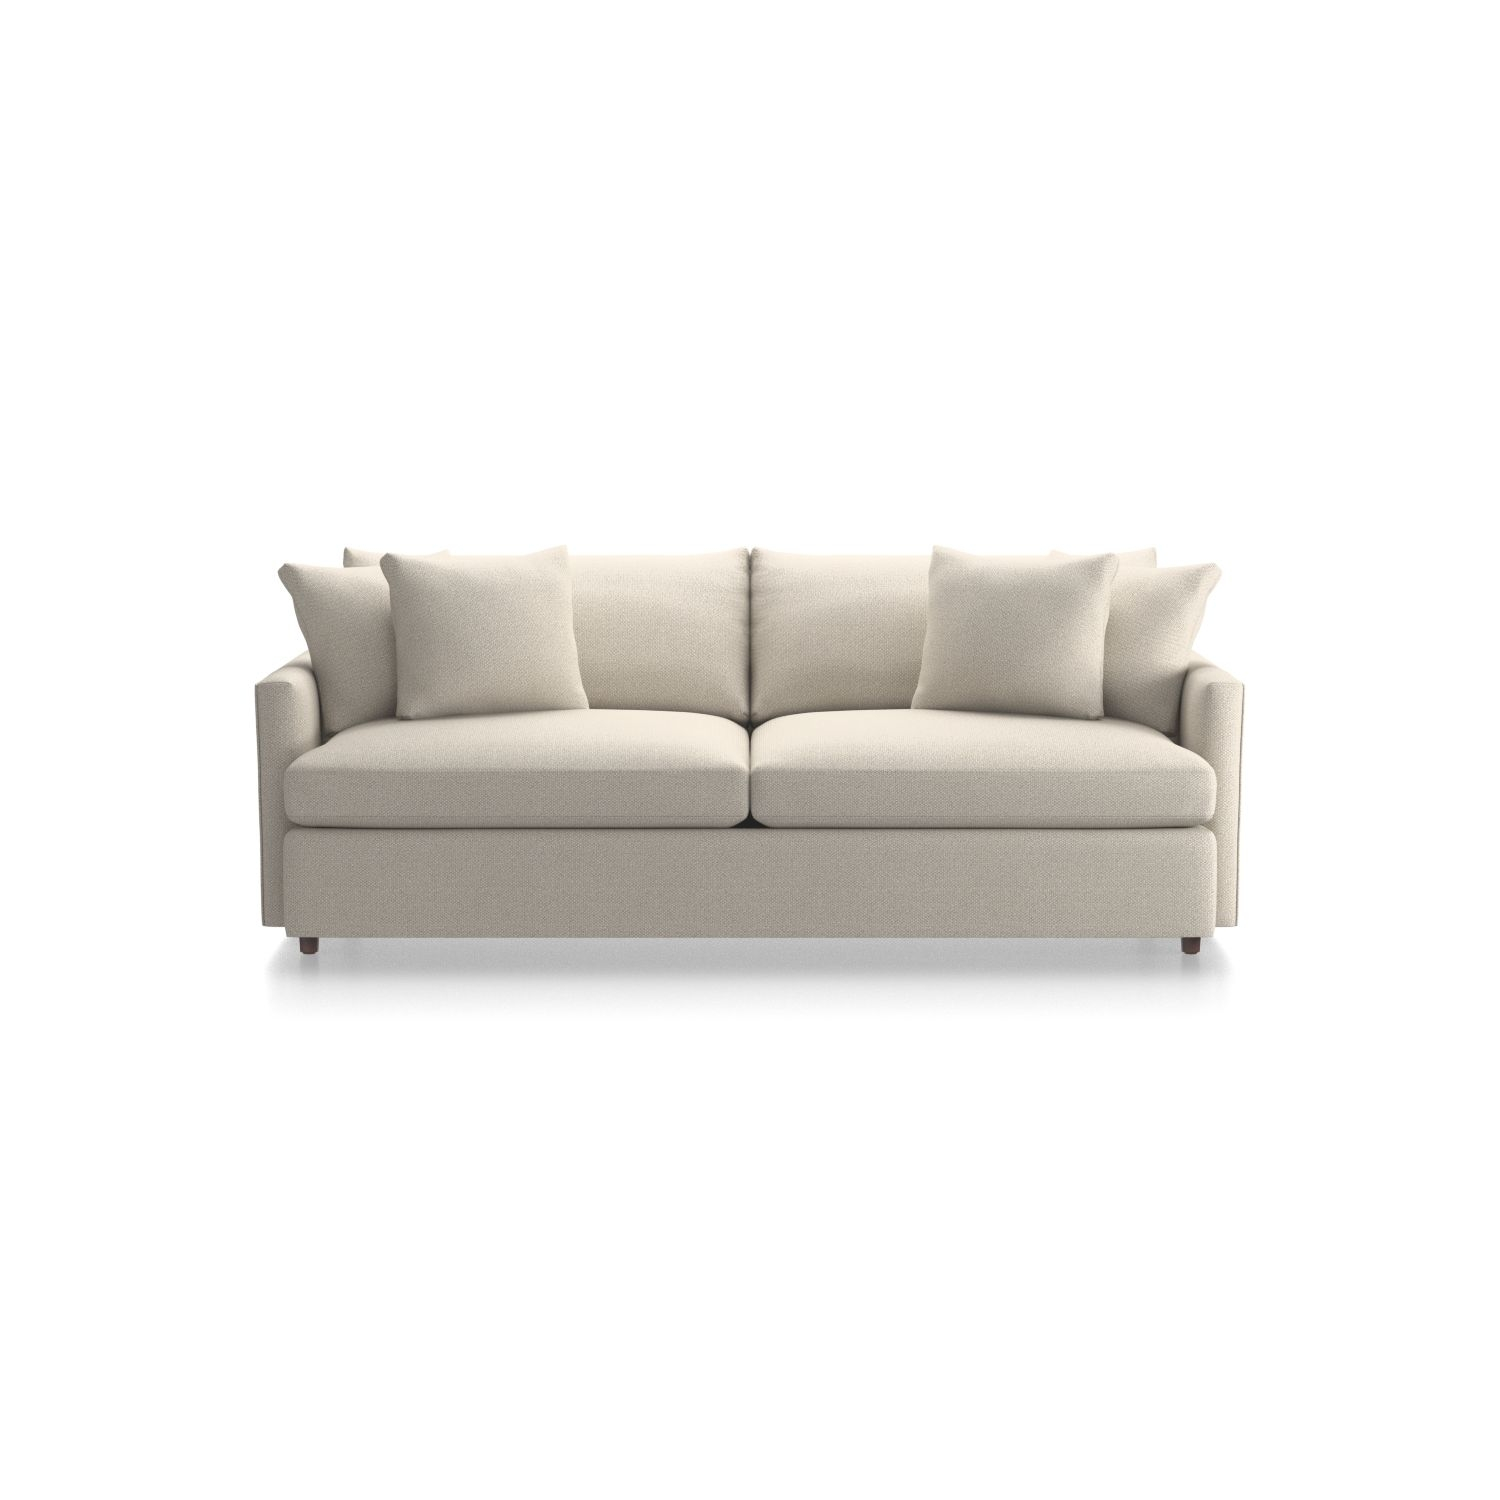 "Lounge Ii 93"" Sofa + Reviews 